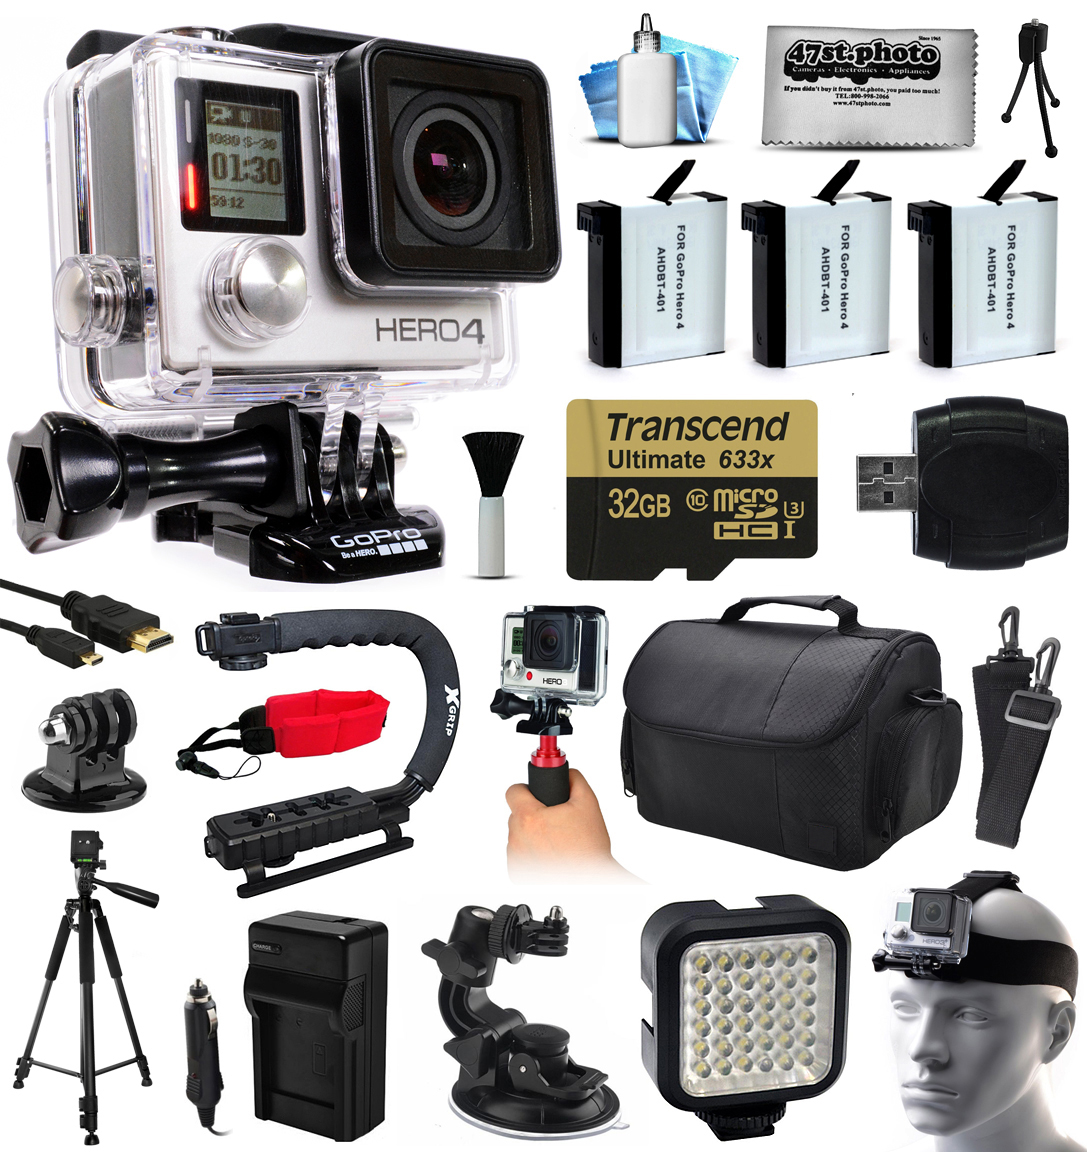 GoPro HERO4 Hero 4 Silver Edition Action Camera with 32GB...